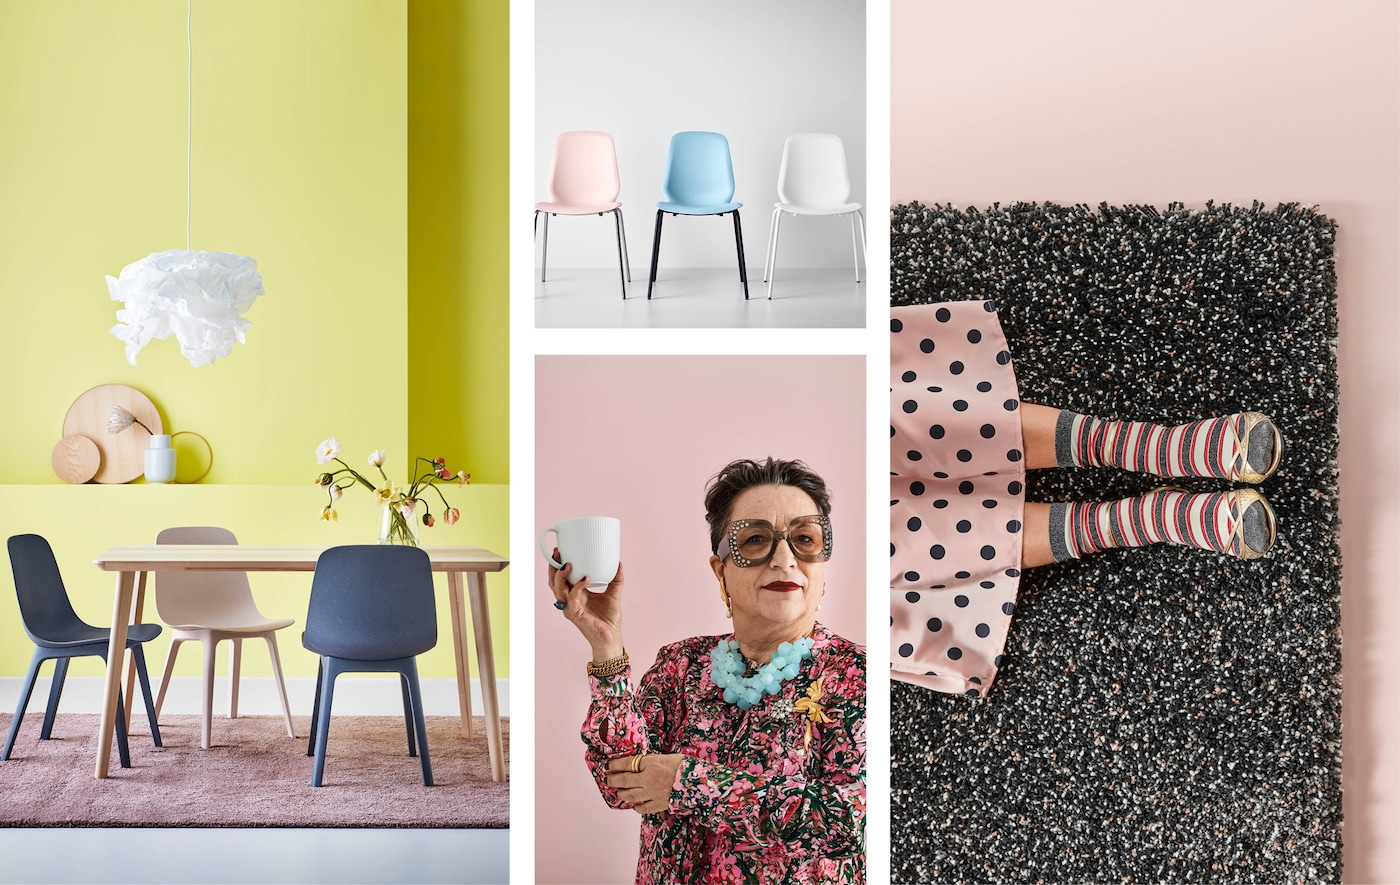 A collage of a dining room, chairs, a woman holding a cup and a rug, all in pastel and bright colors.